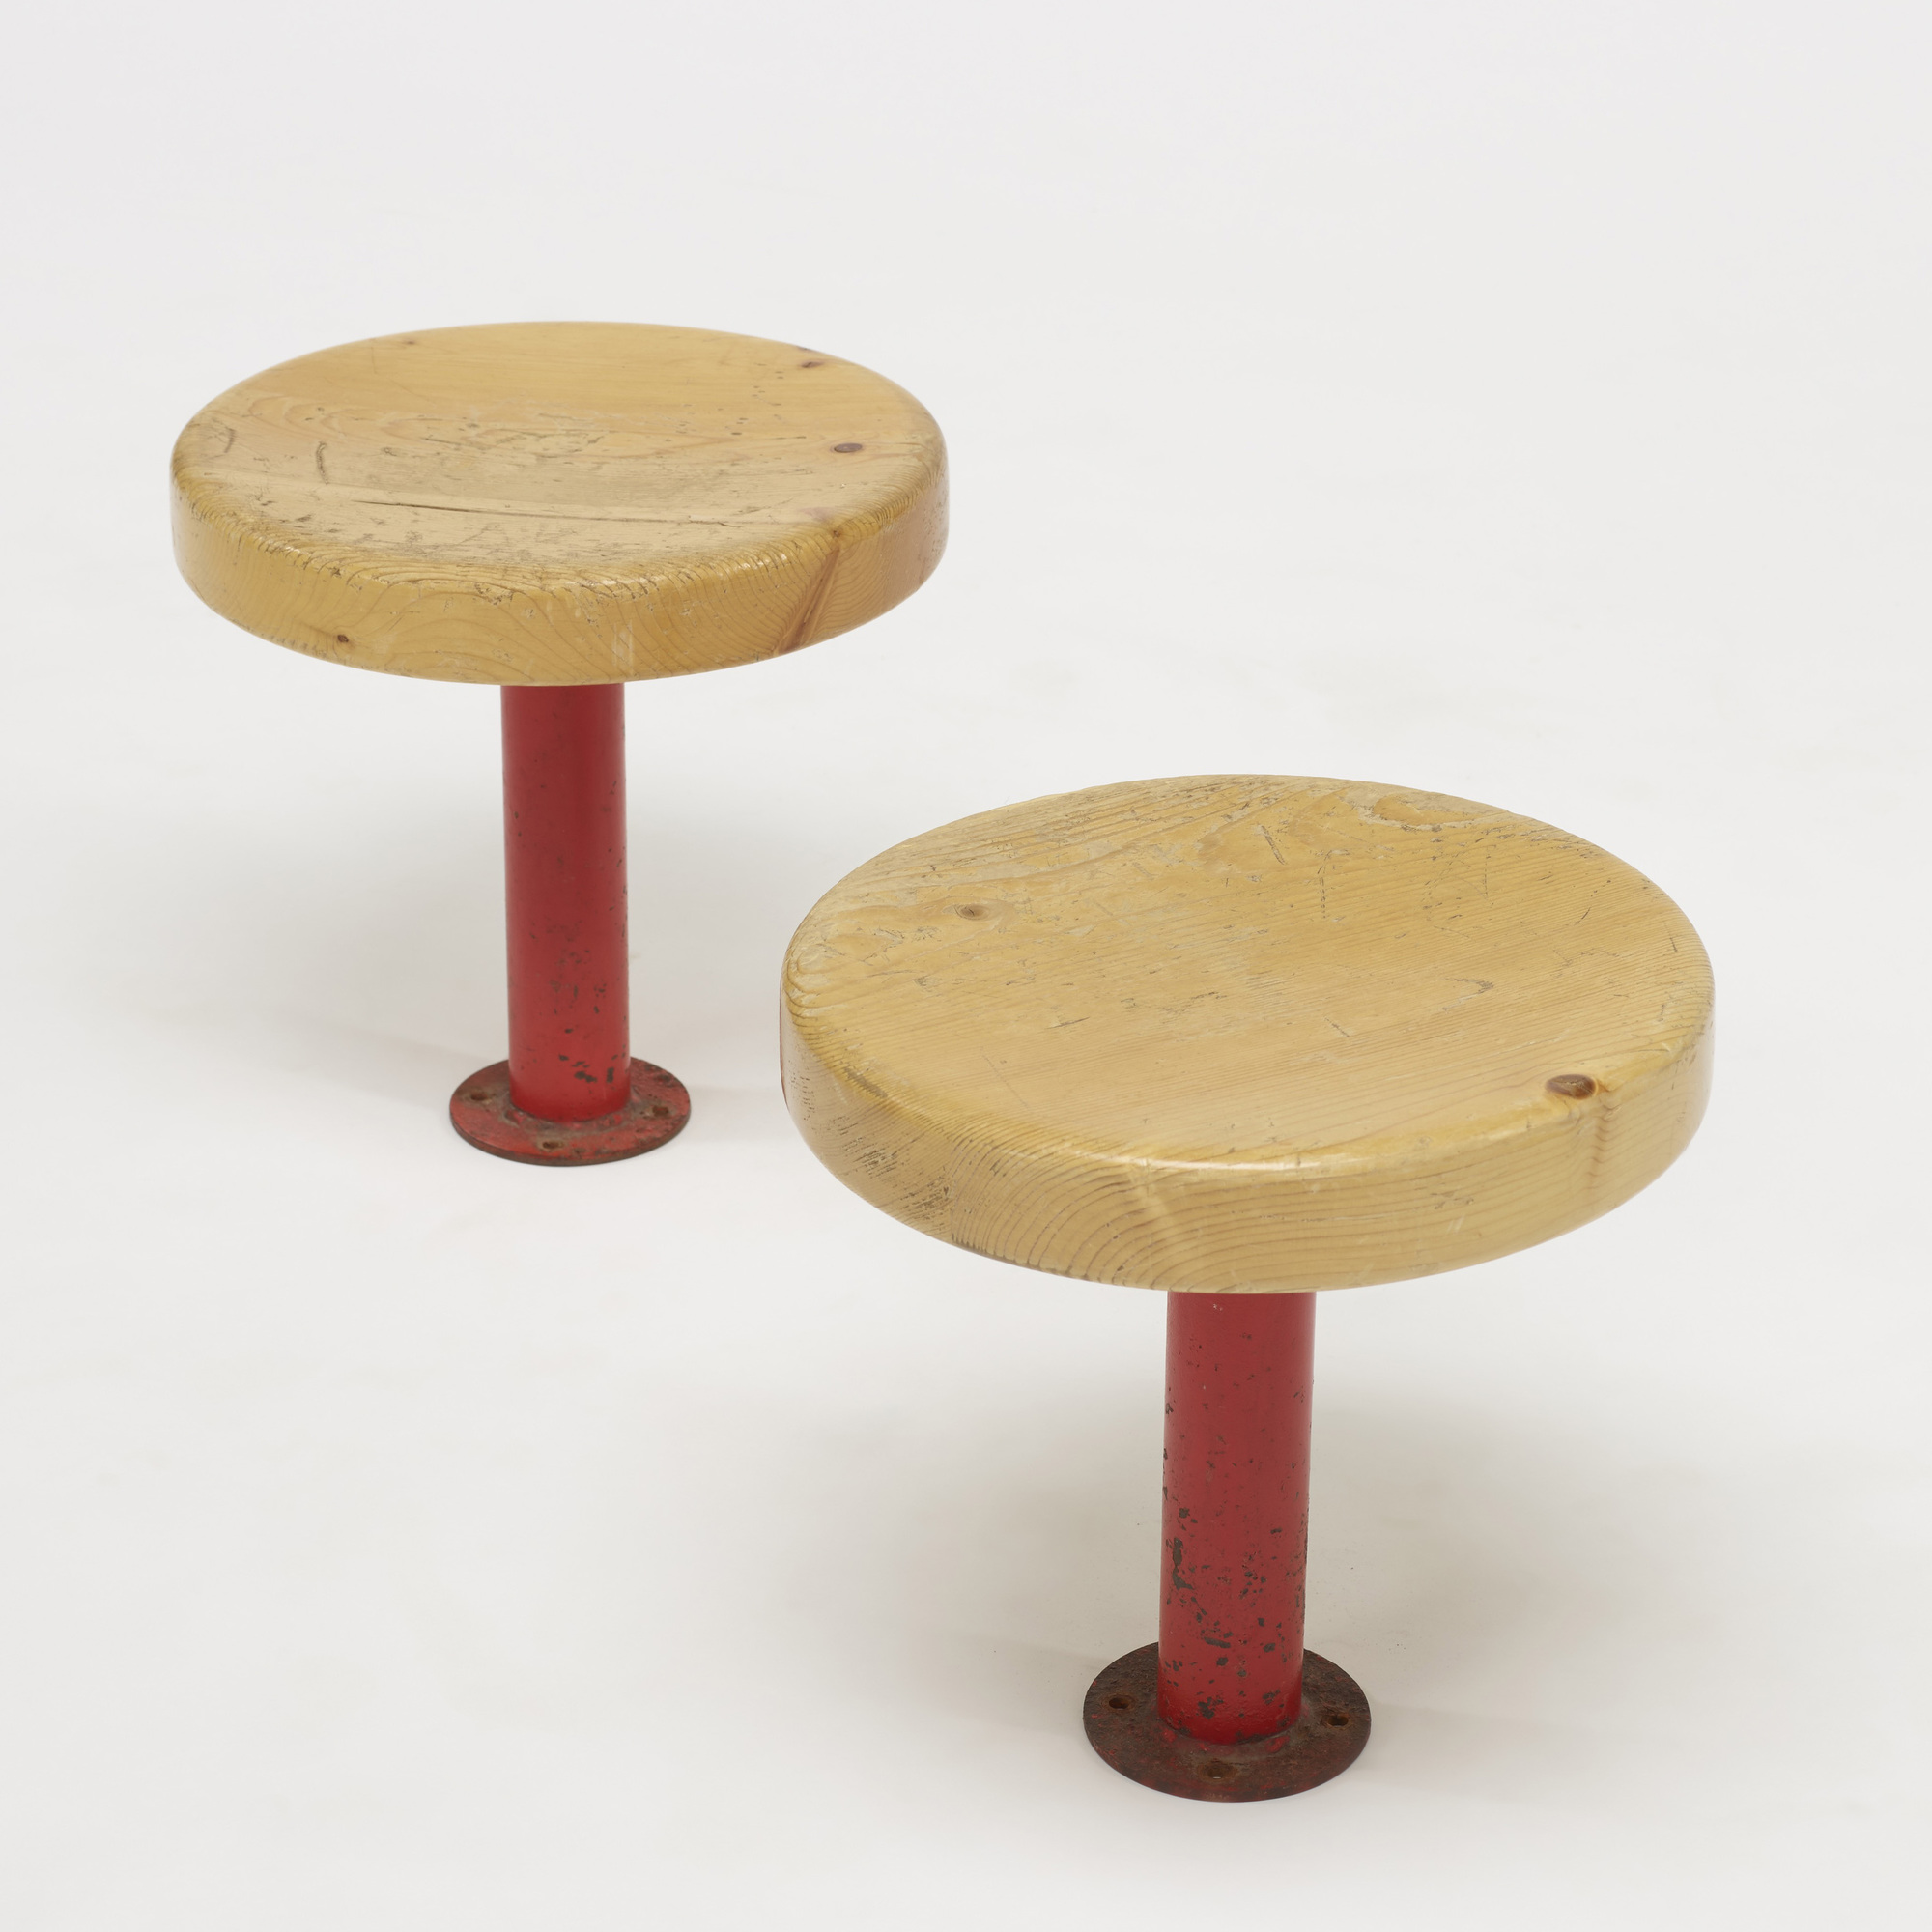 127: Charlotte Perriand / Kindergarten stools from Les Arcs, pair (2 of 2)